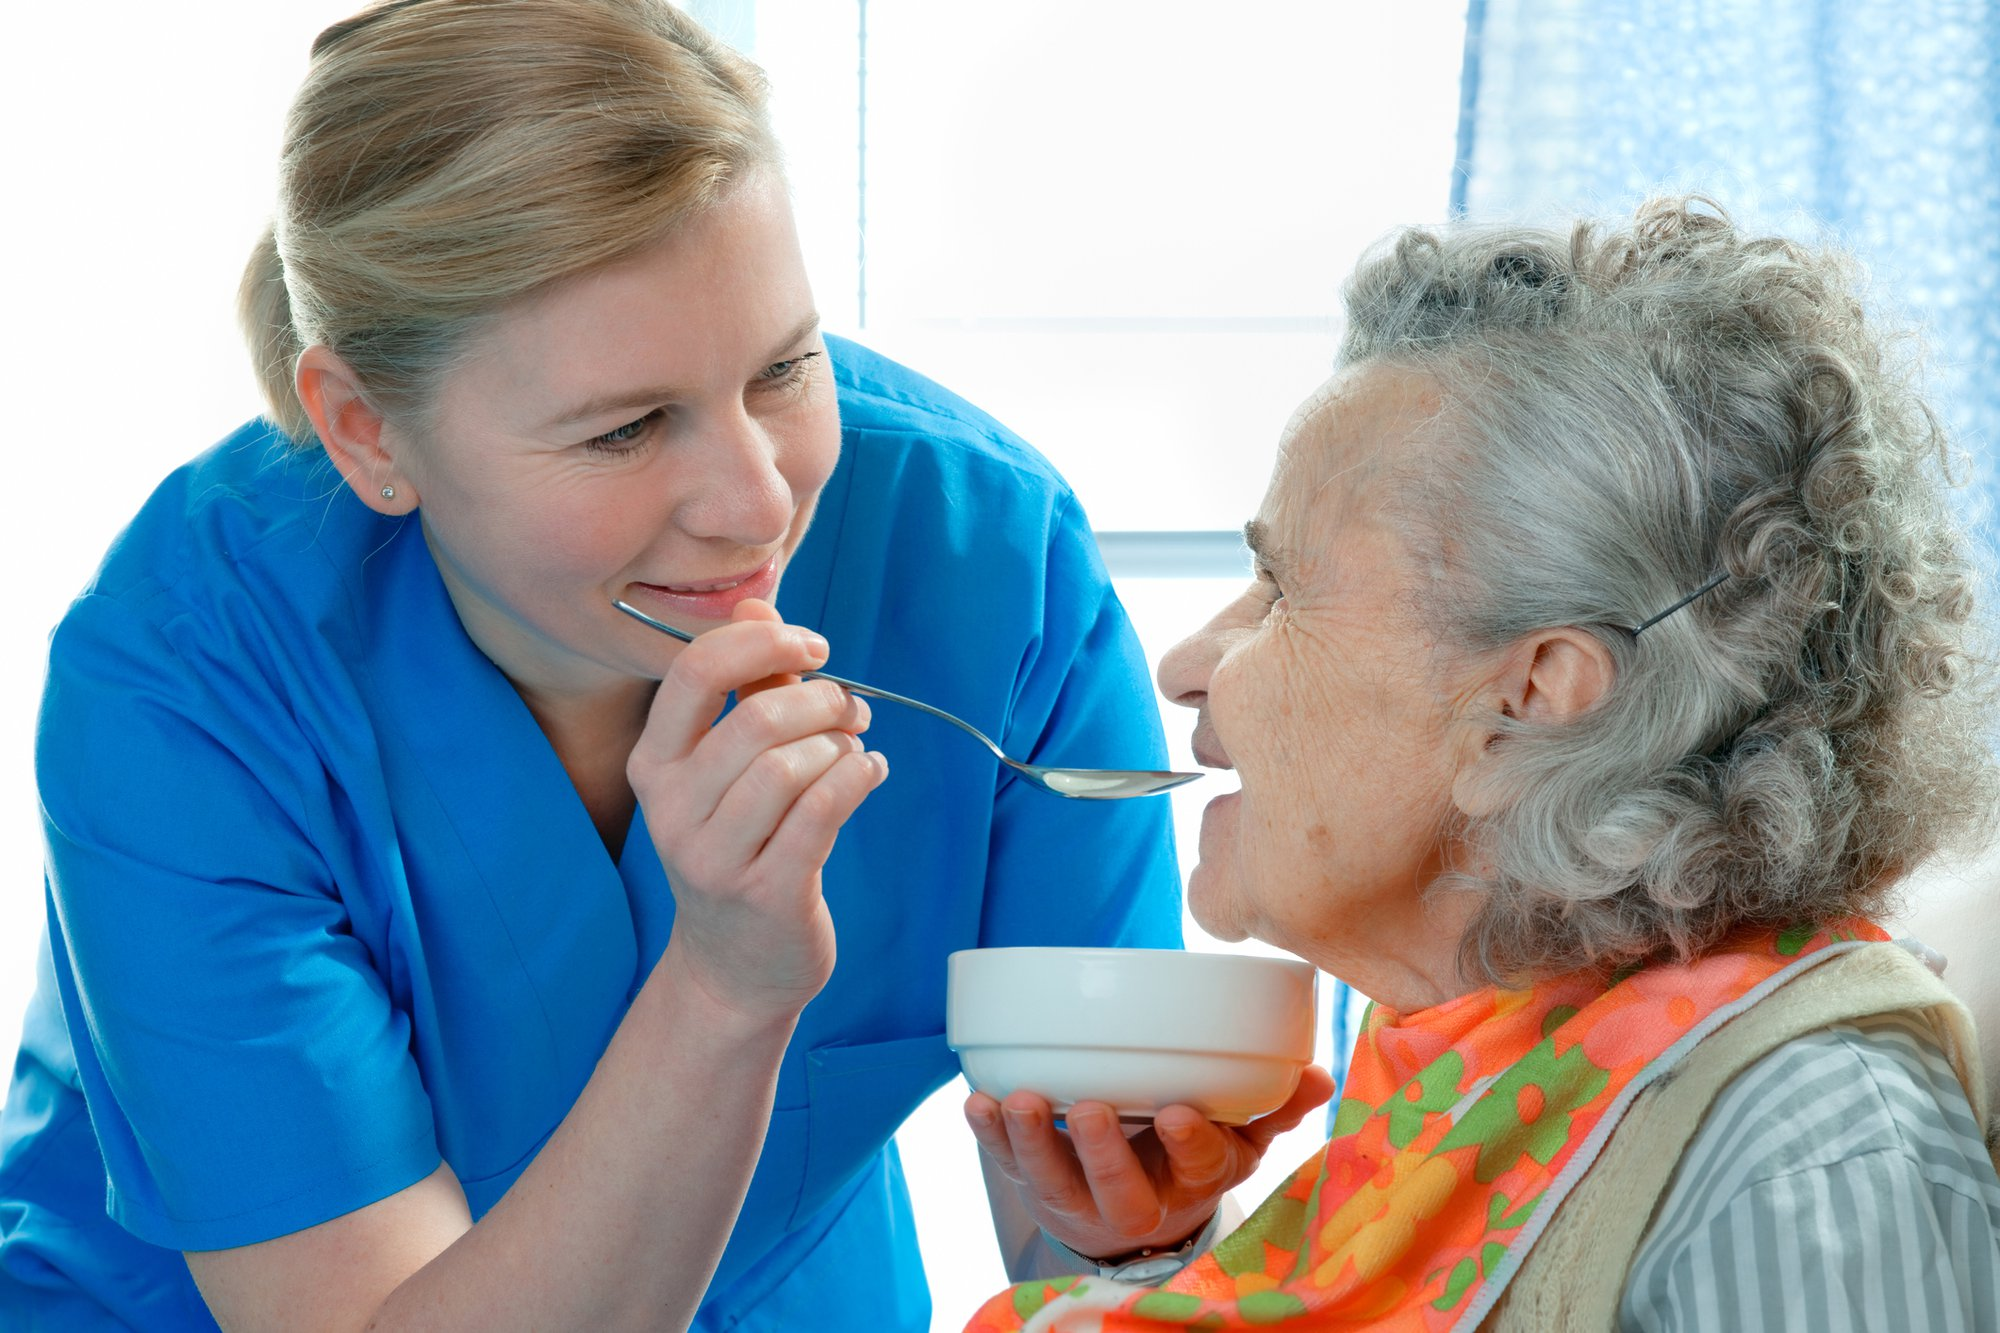 A female caregiver provides in-home assistance for an elderly woman by feeding her a healthy meal.